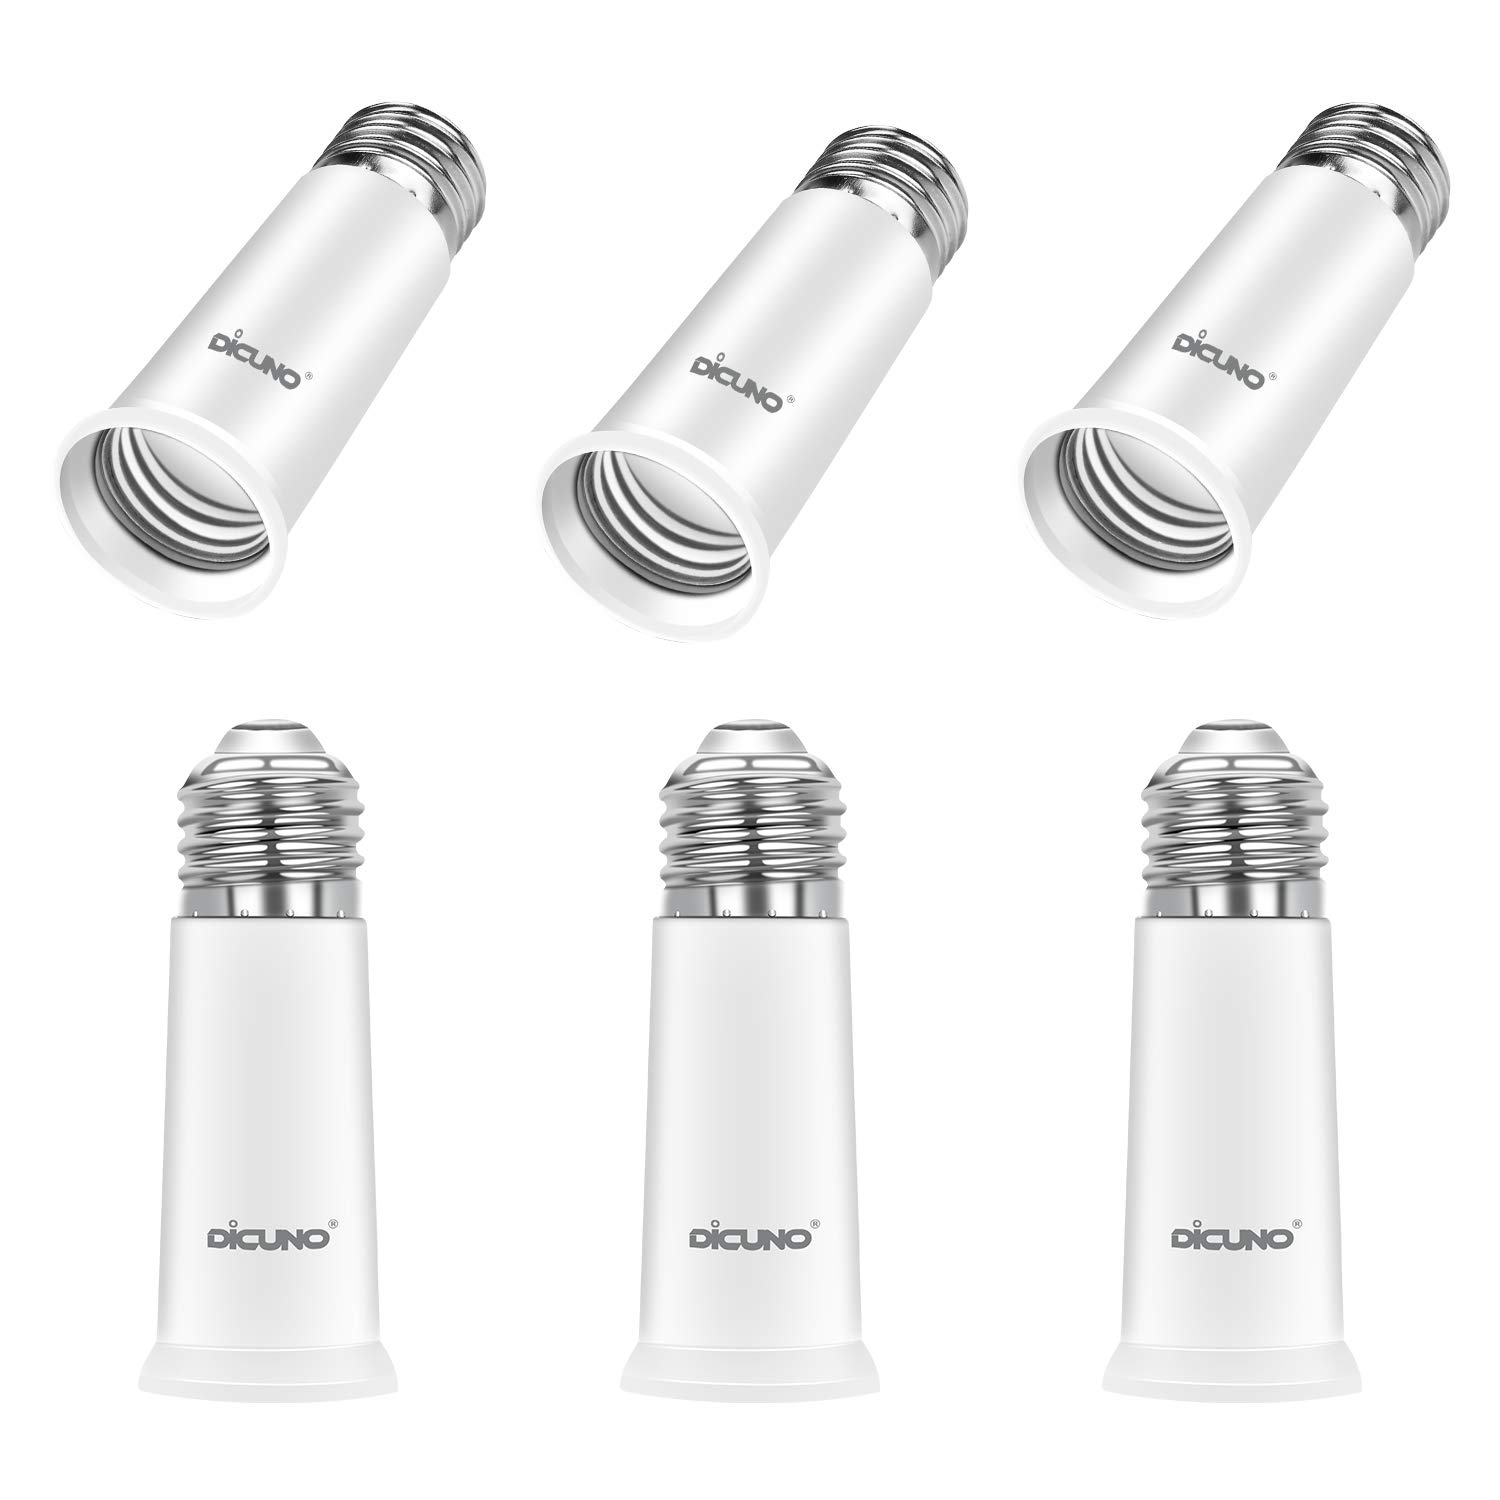 DiCUNO E26 Socket Extender, E26 to E26 Standard Medium Base, 6.5CM/2.56IN Extension Socket Adapter, Max 200W Light Bulb Extender 6 Pcs